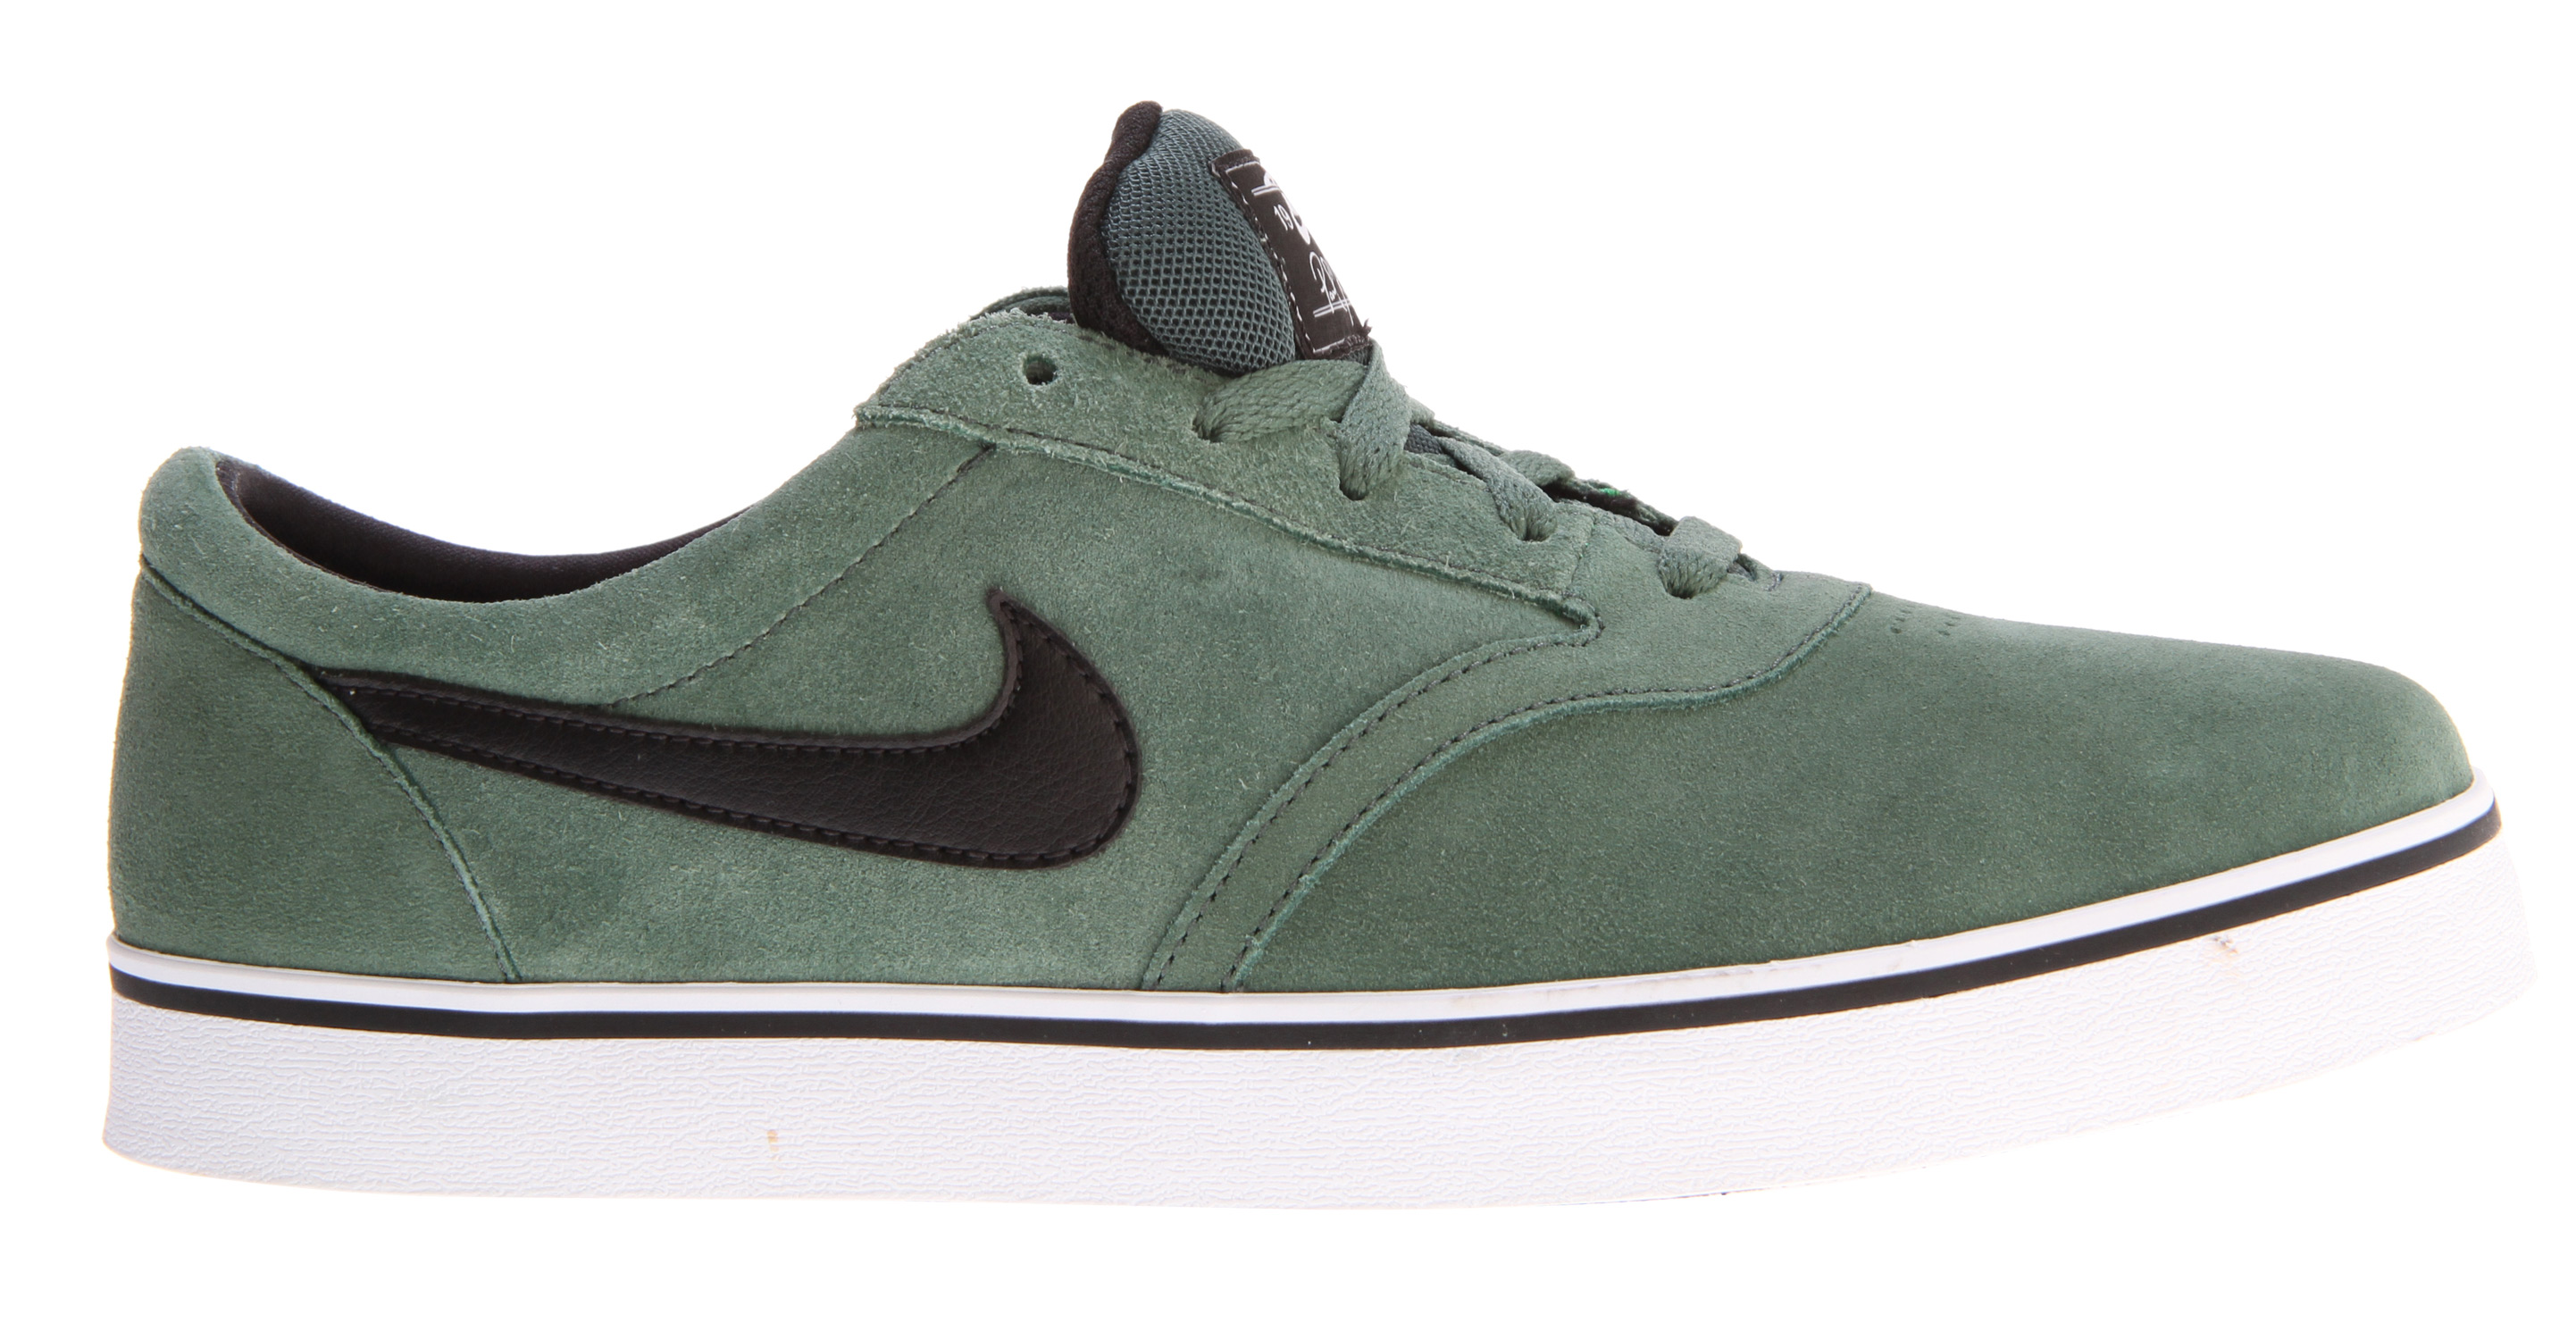 Skateboard A fresh twist on the P-Rod IV, the Nike SB Vulc Rod Men''s Shoe is a vulcanized version with a leaner profile and ultra-durable rubber all the way around.Key Features of the Nike Vulc Rod Skate Shoes: Suede upper for a comfortable fit and premium look Vulcanized rubber midsole for enhanced durability Herringbone traction pattern at the outsole for traction on a variety of surfaces - $51.95